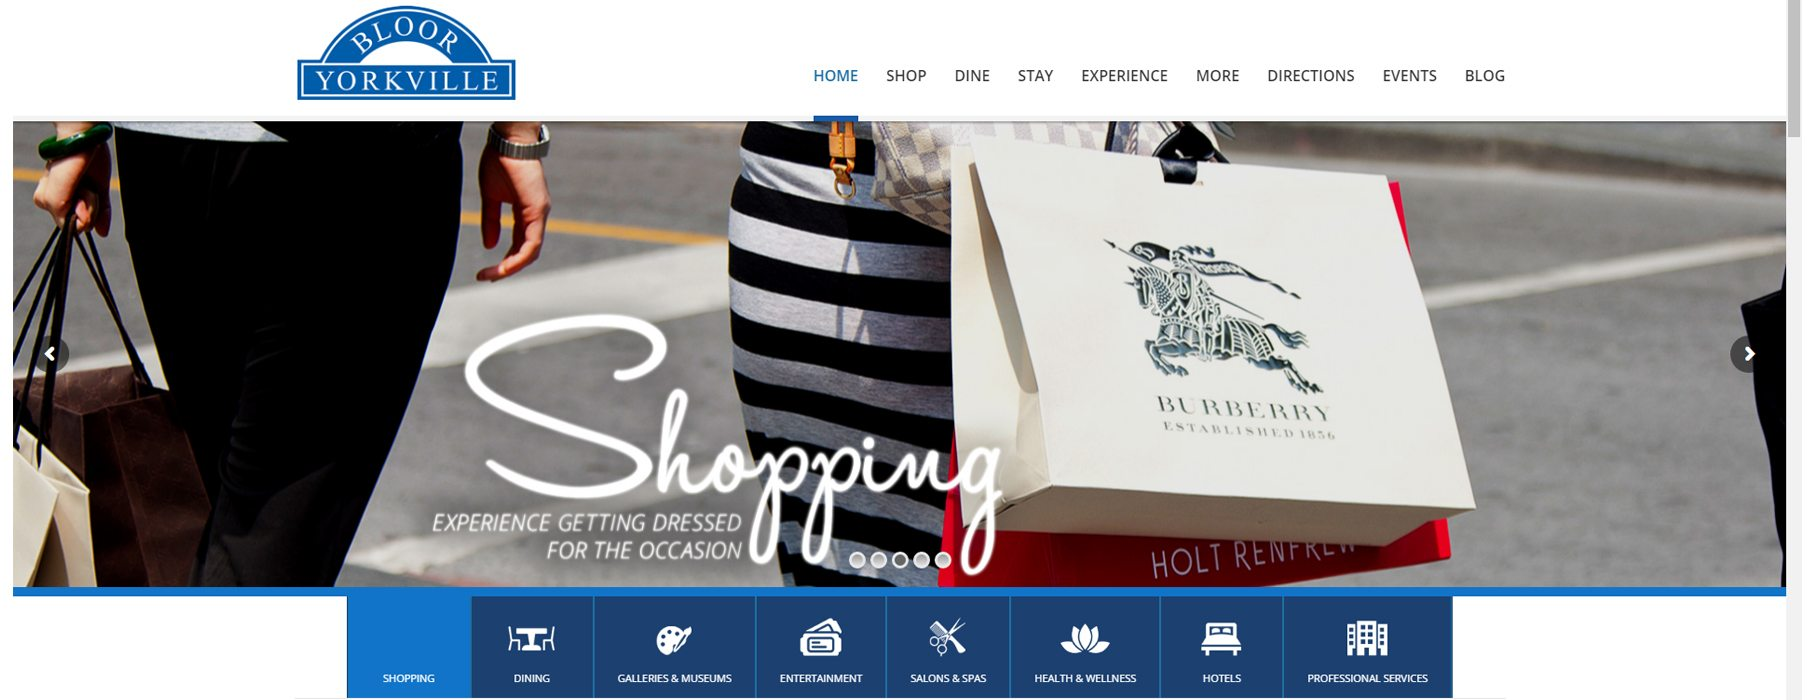 Announcing the NEW Bloor-Yorkville BIA Website!